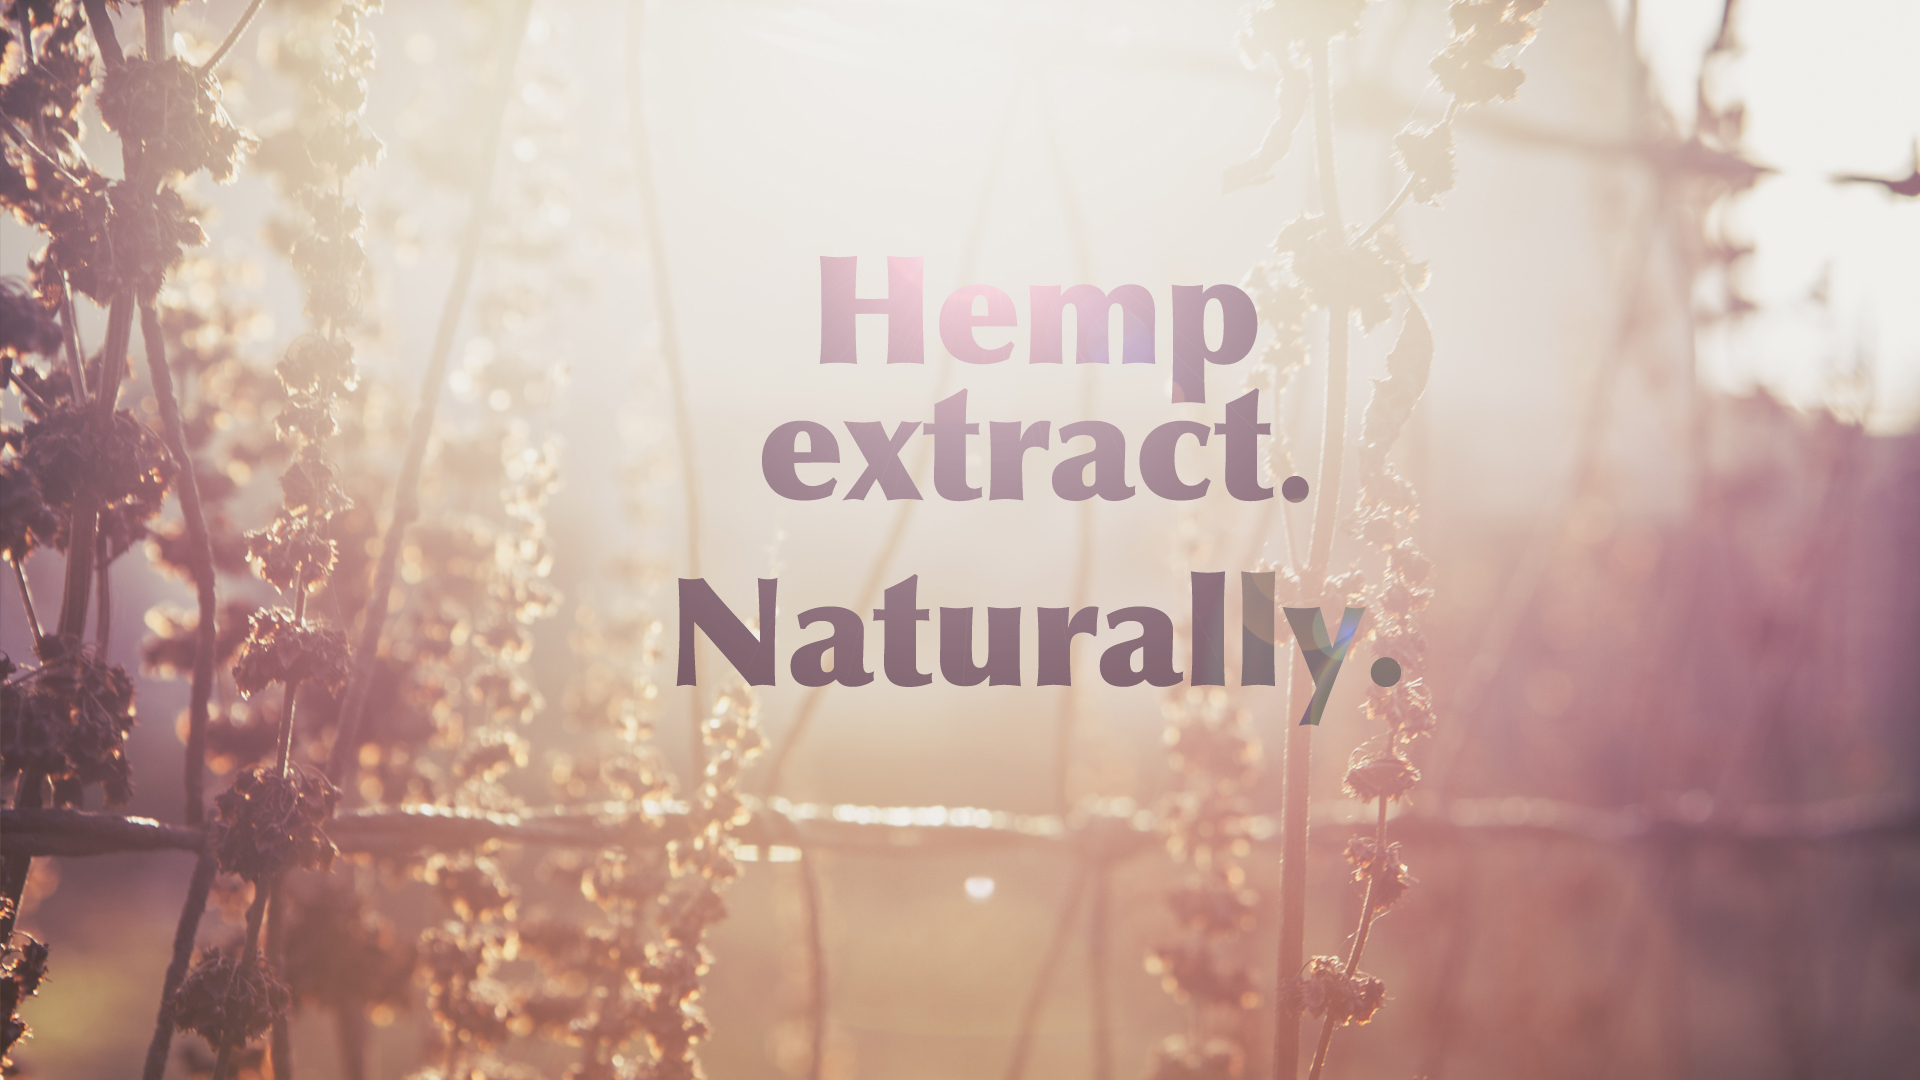 Norton-Valley-hemp-page.jpg